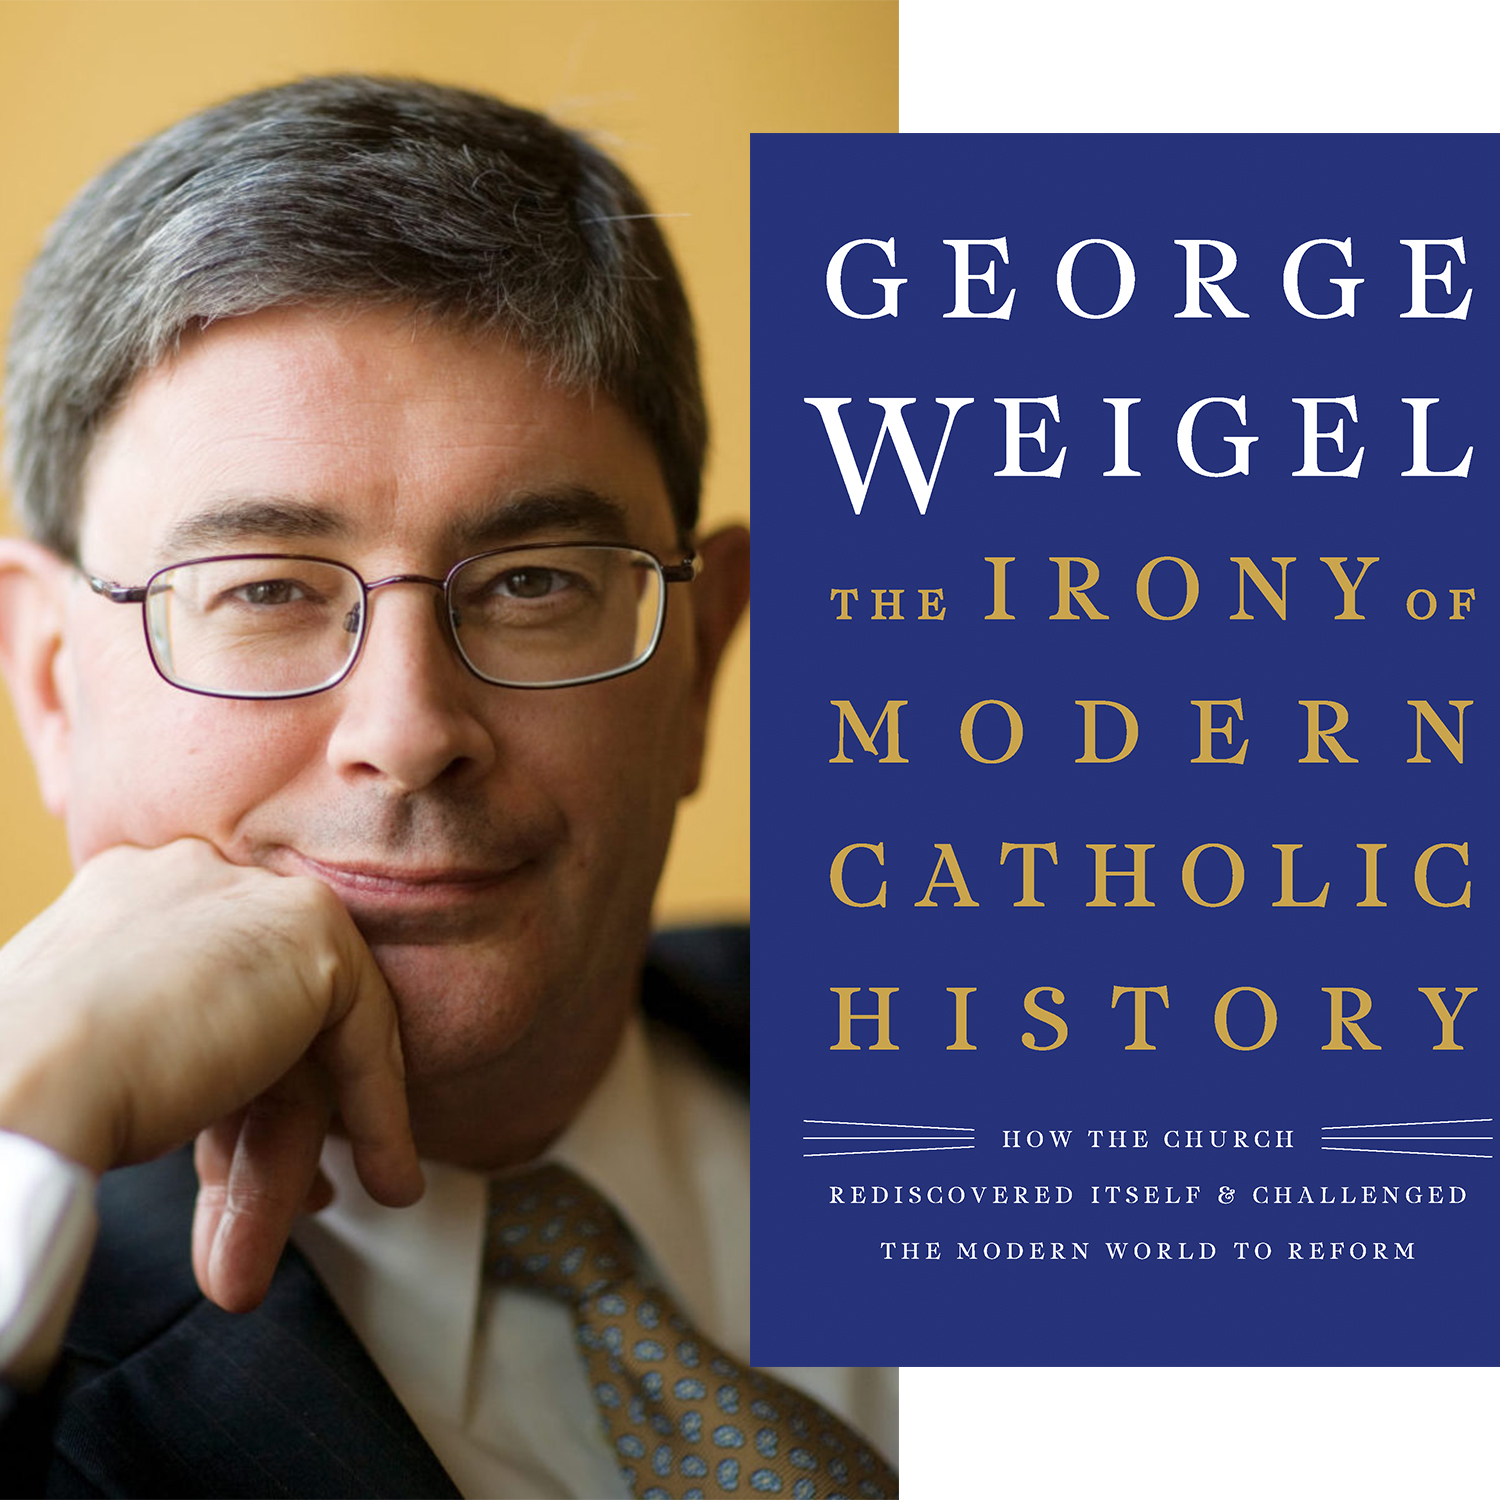 Ep. 22 – The irony of modern Catholic history, with George Weigel